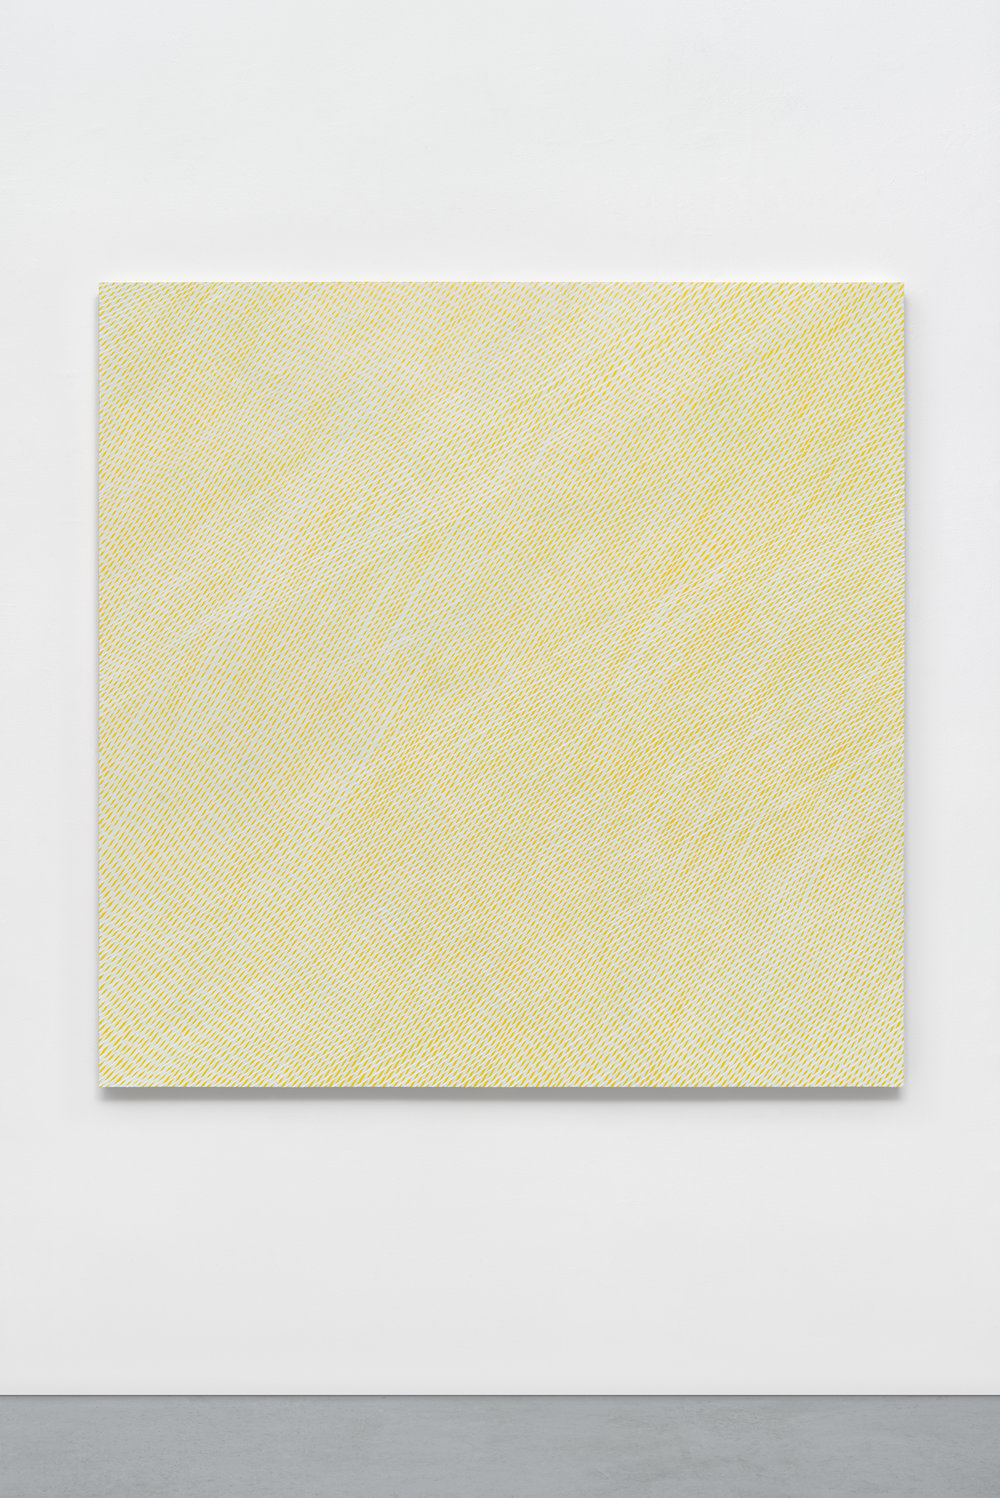 """Sun Mist,"" 2016, phosphorescent and acrylic on panel, 60 x 60 x 2 inches"